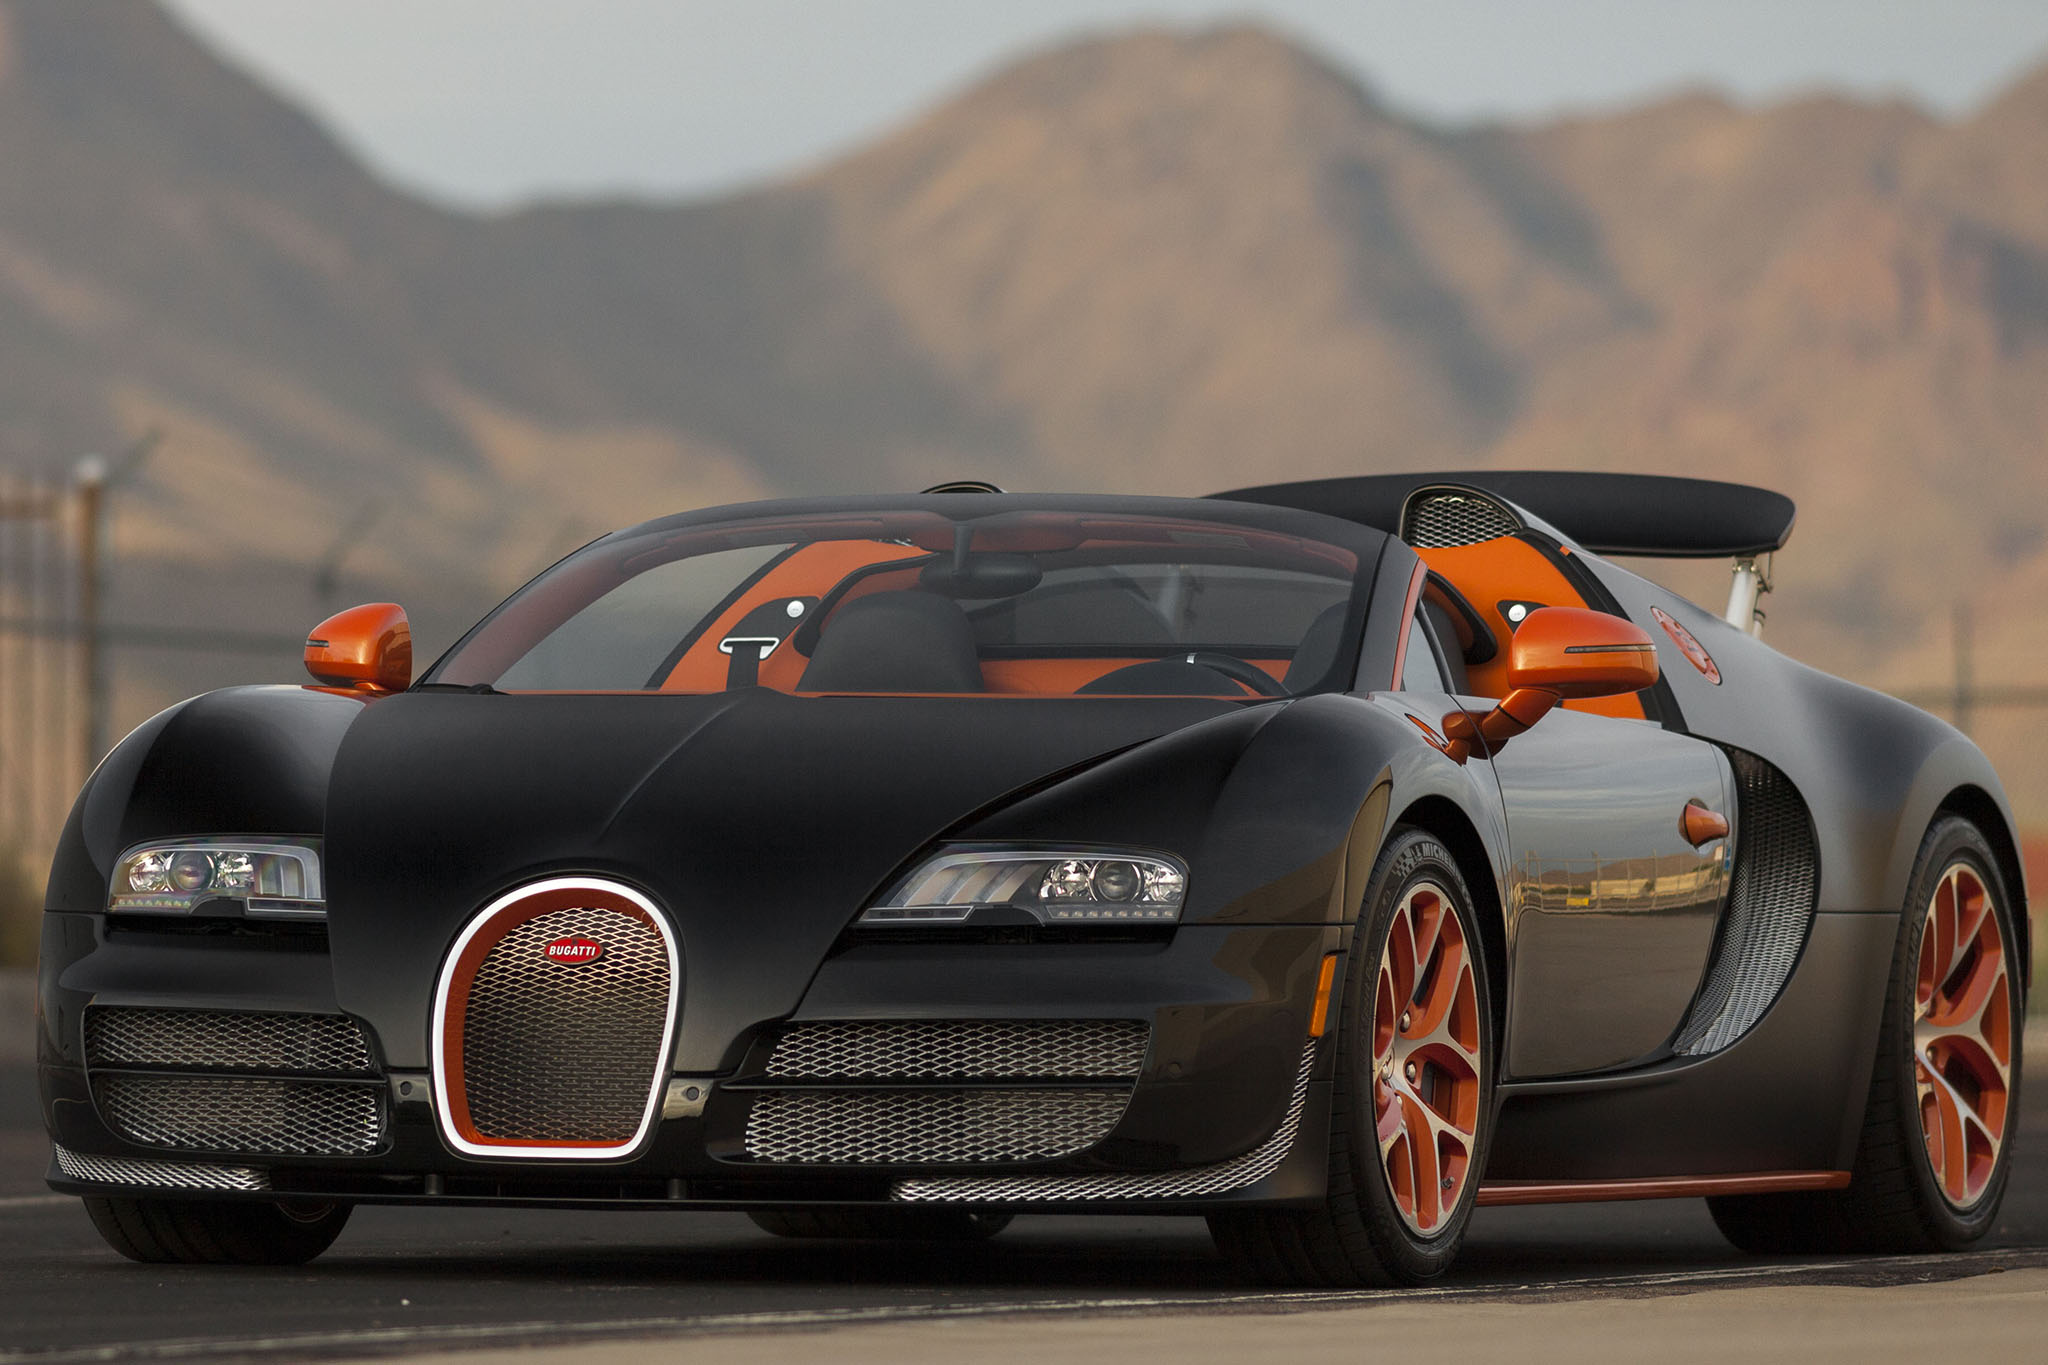 2015-Bugatti-Veyron-Grand-Sport-Vitesse-Mecum-Front-Three-Quarters Terrific Bugatti Veyron Grand Sport Vitesse Gold Cars Trend